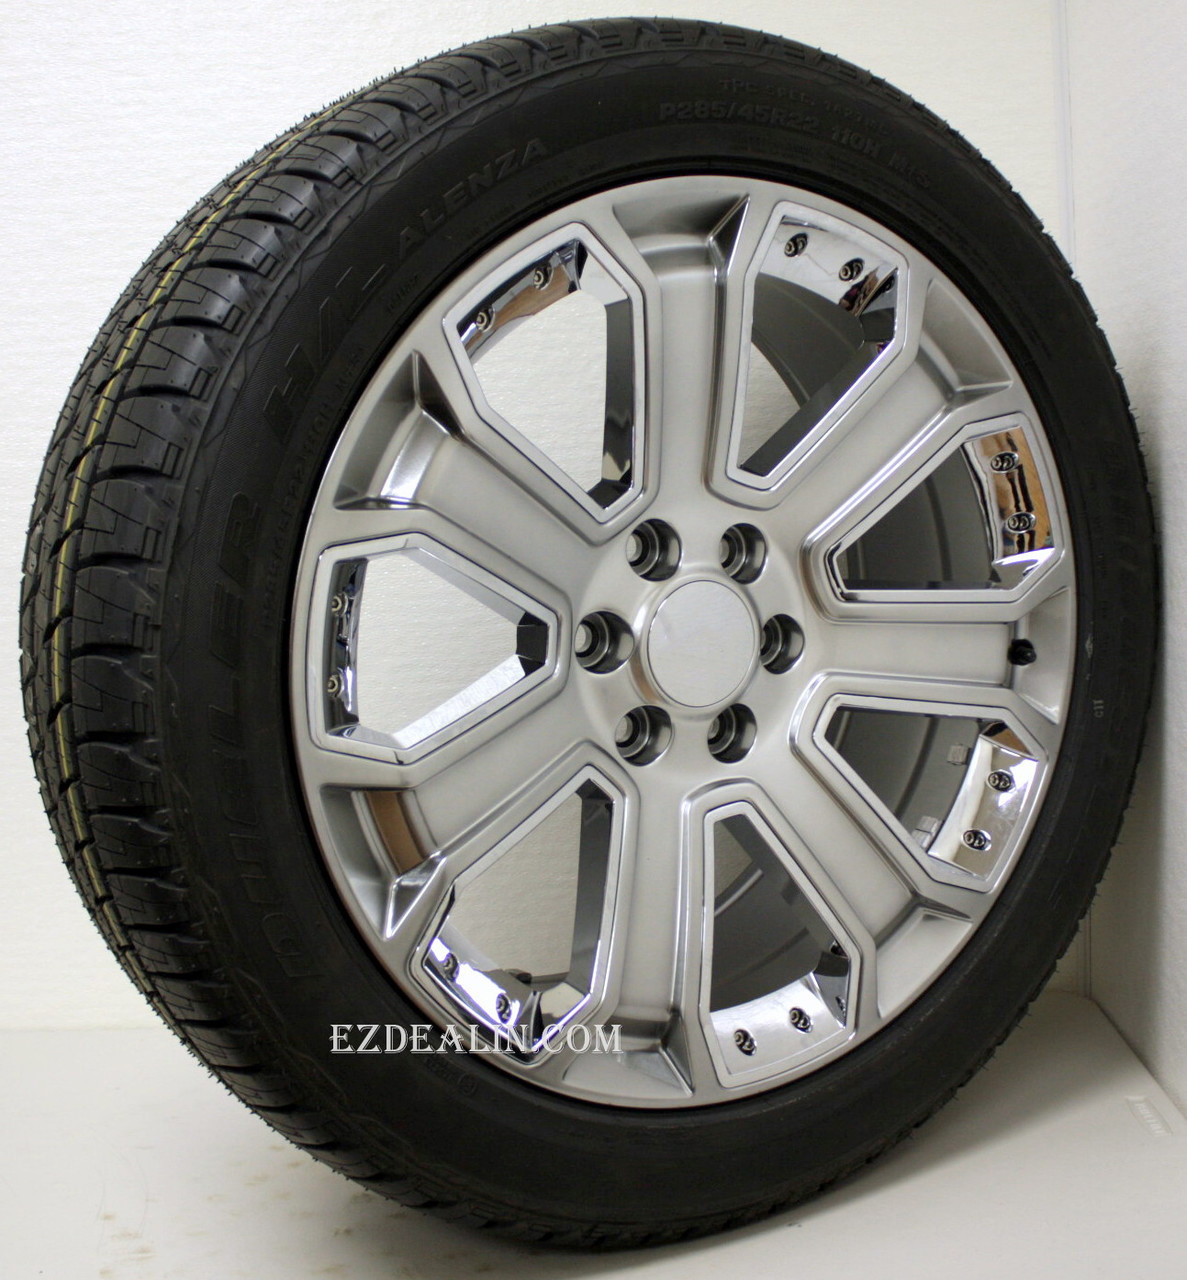 """Hyper Silver 22"""" With Chrome Inserts Wheels with Bridgestone Tires for Chevy Silverado, Tahoe, Suburban - New Set of 4"""